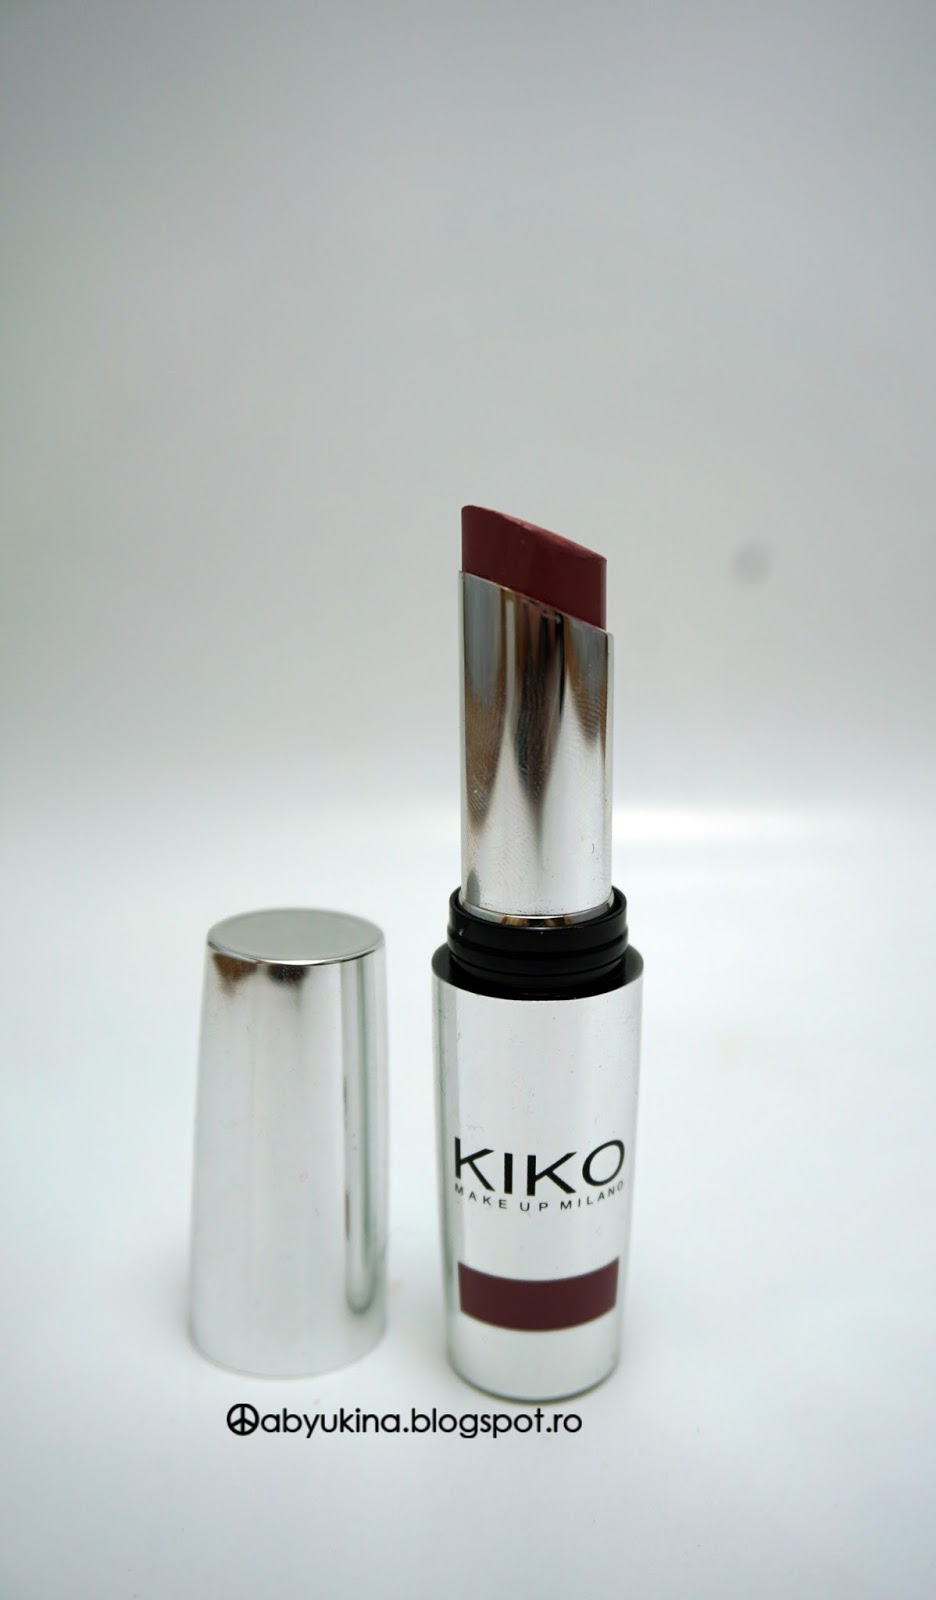 Review Swatches Kiko Lipsticks Abyukina